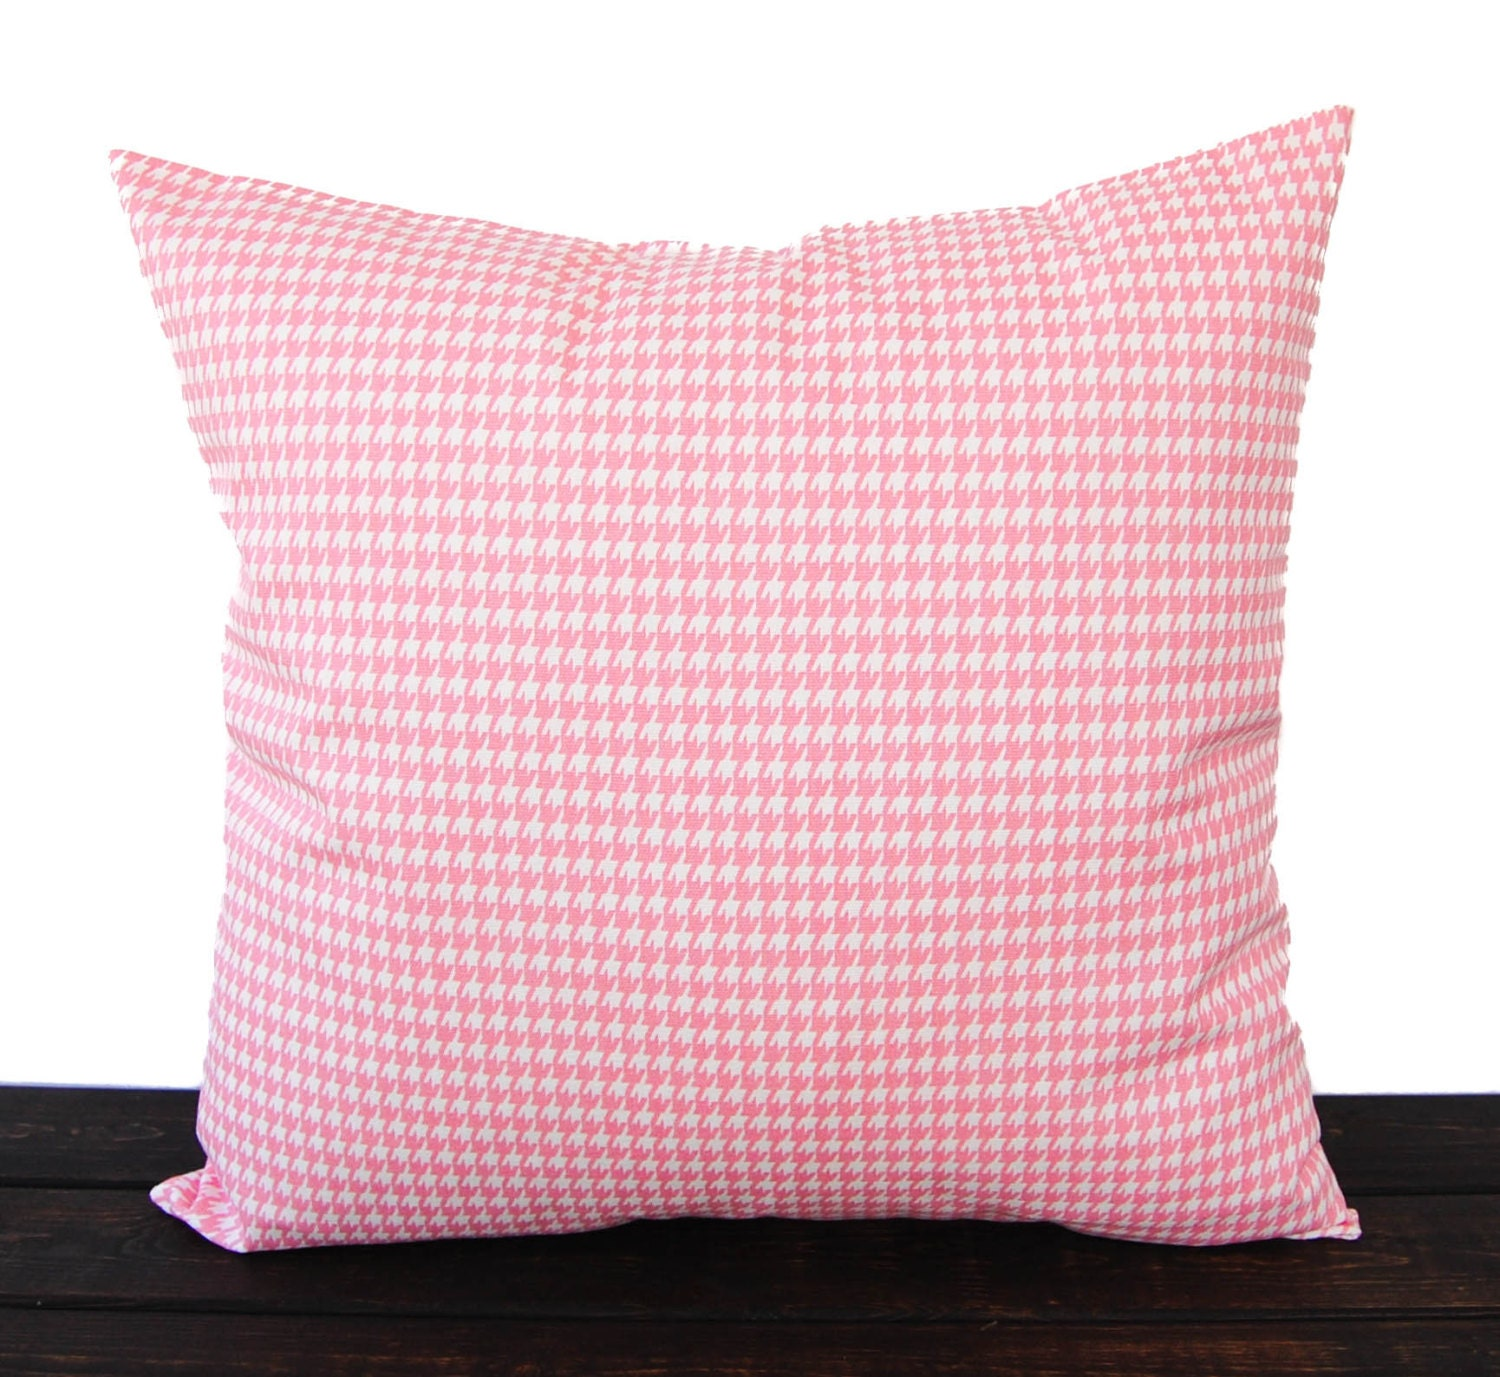 Baby Pink Decorative Pillows : Throw pillow cover baby pink Houndstooth cushion cover pillow